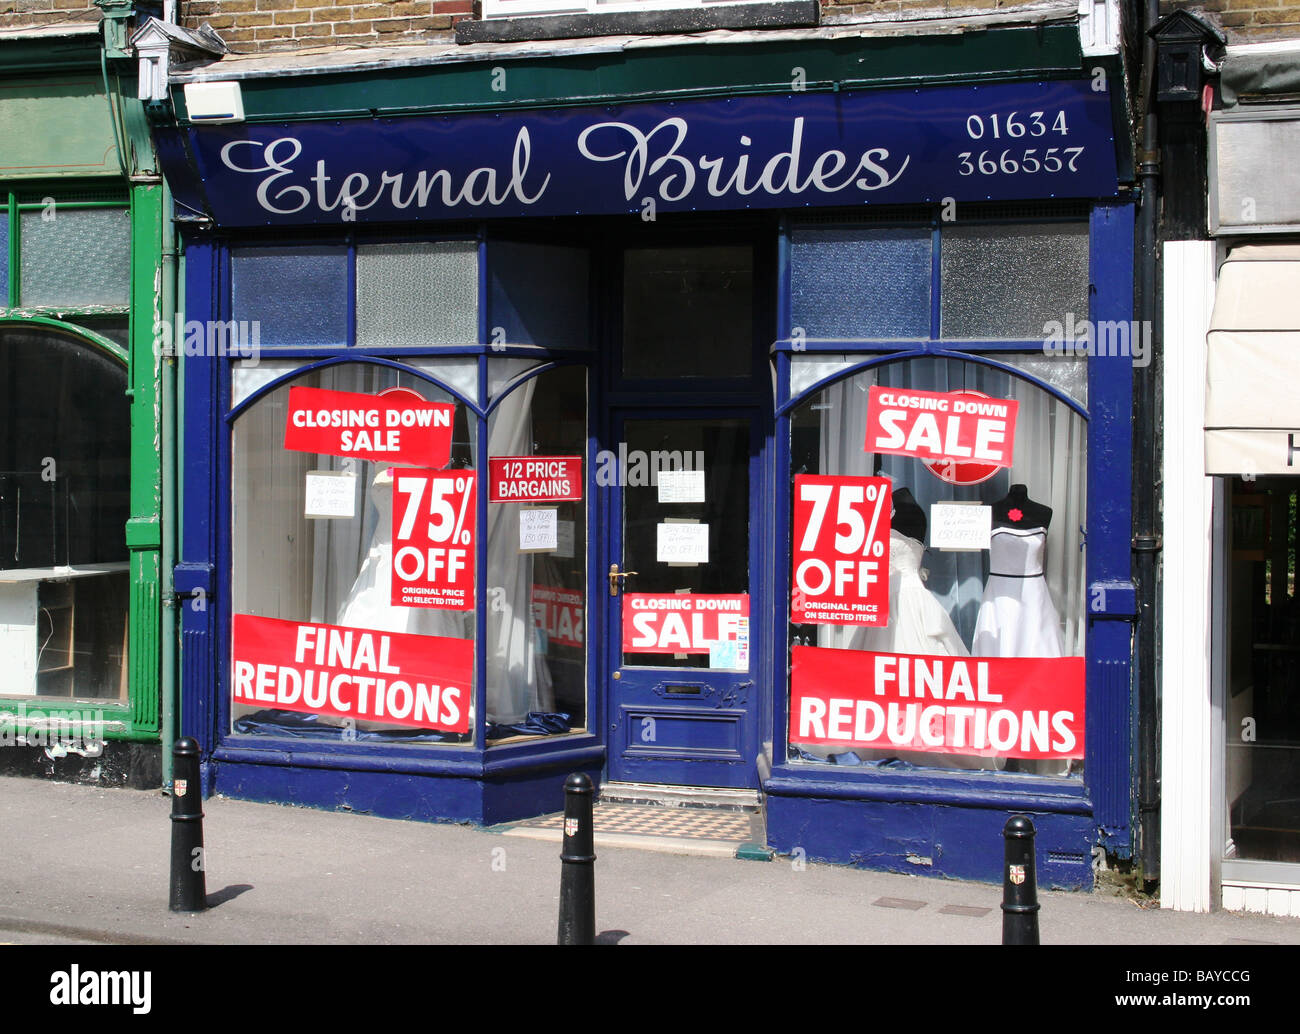 Bridal shop 75% off closing down sale. Shop closures and closing-down signs with final reductions. Stock Photo